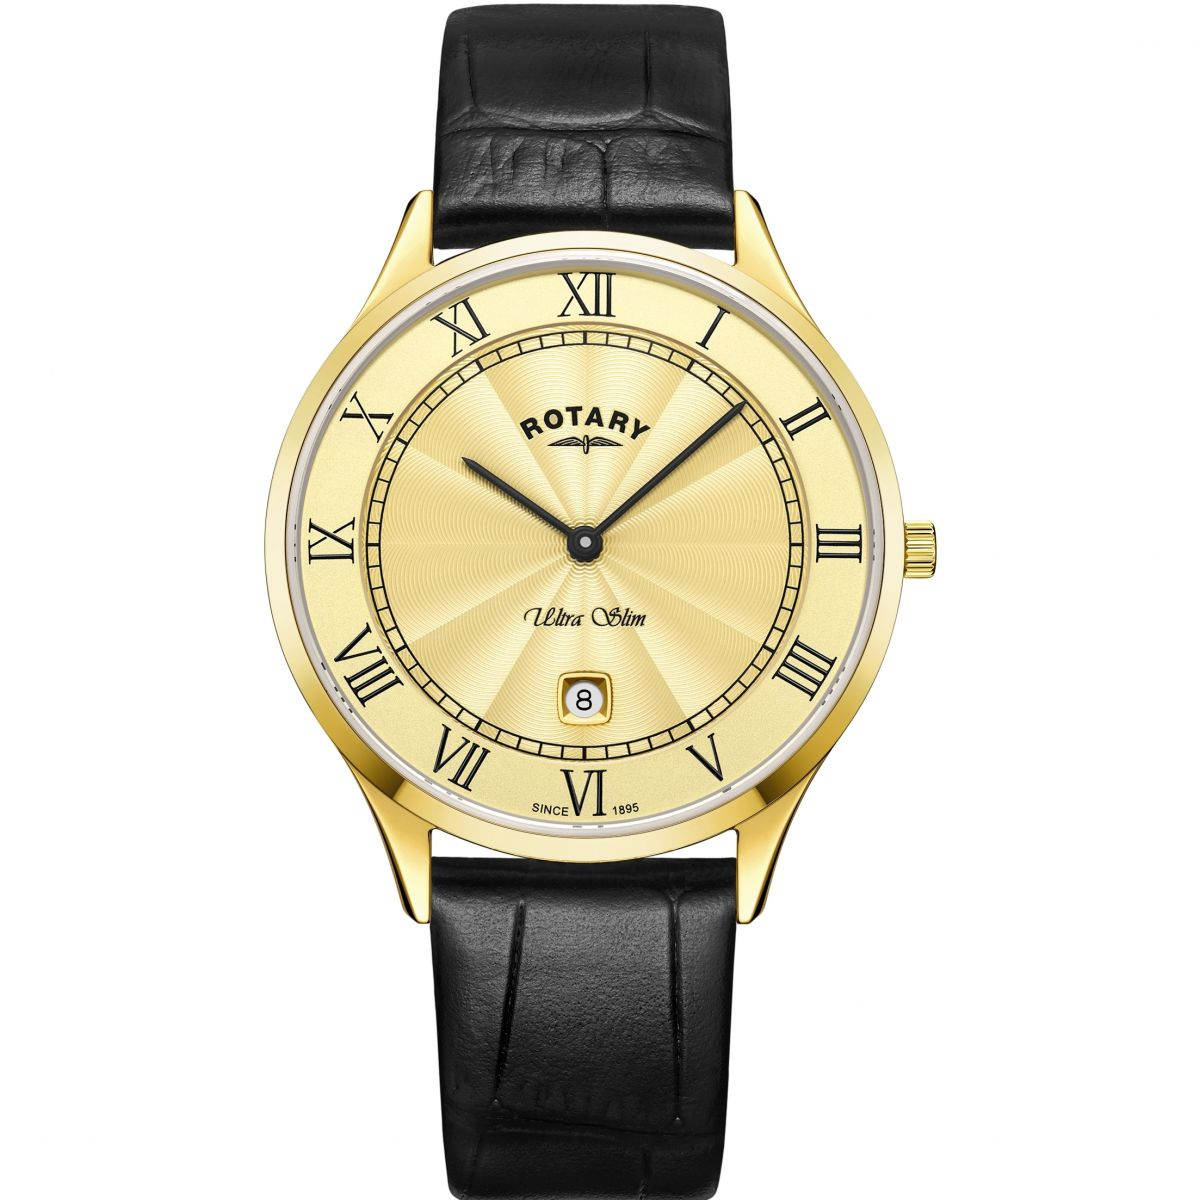 New Latest Rotary Gs08303/03 Ultra Slim Date Leather Strap Watch Black/Gold for Men Sale Sale Online